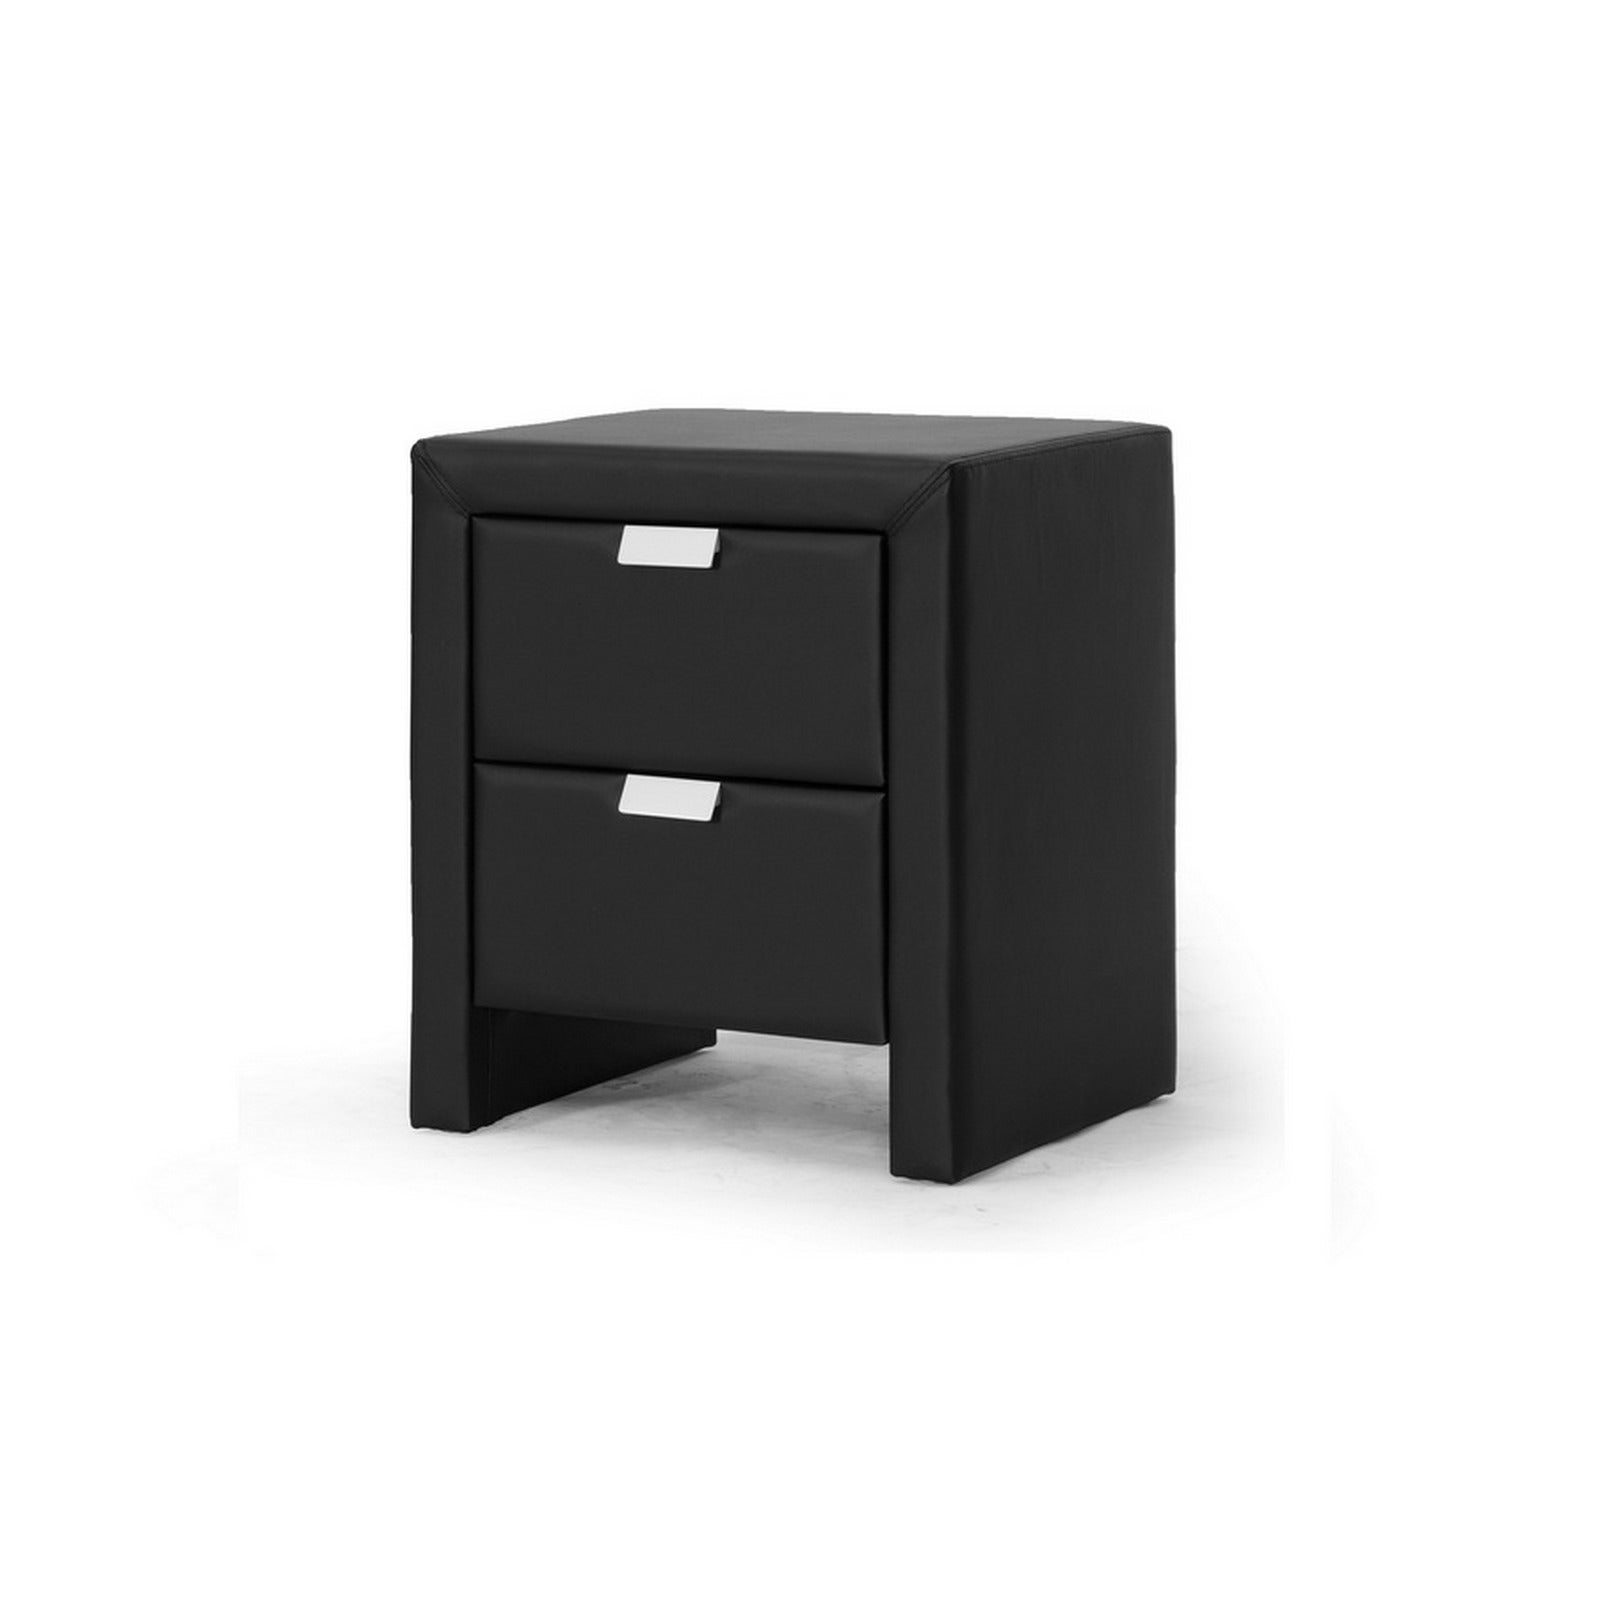 Details About Urban Designs 22 Inch Frey Upholstered Modern Nightstand